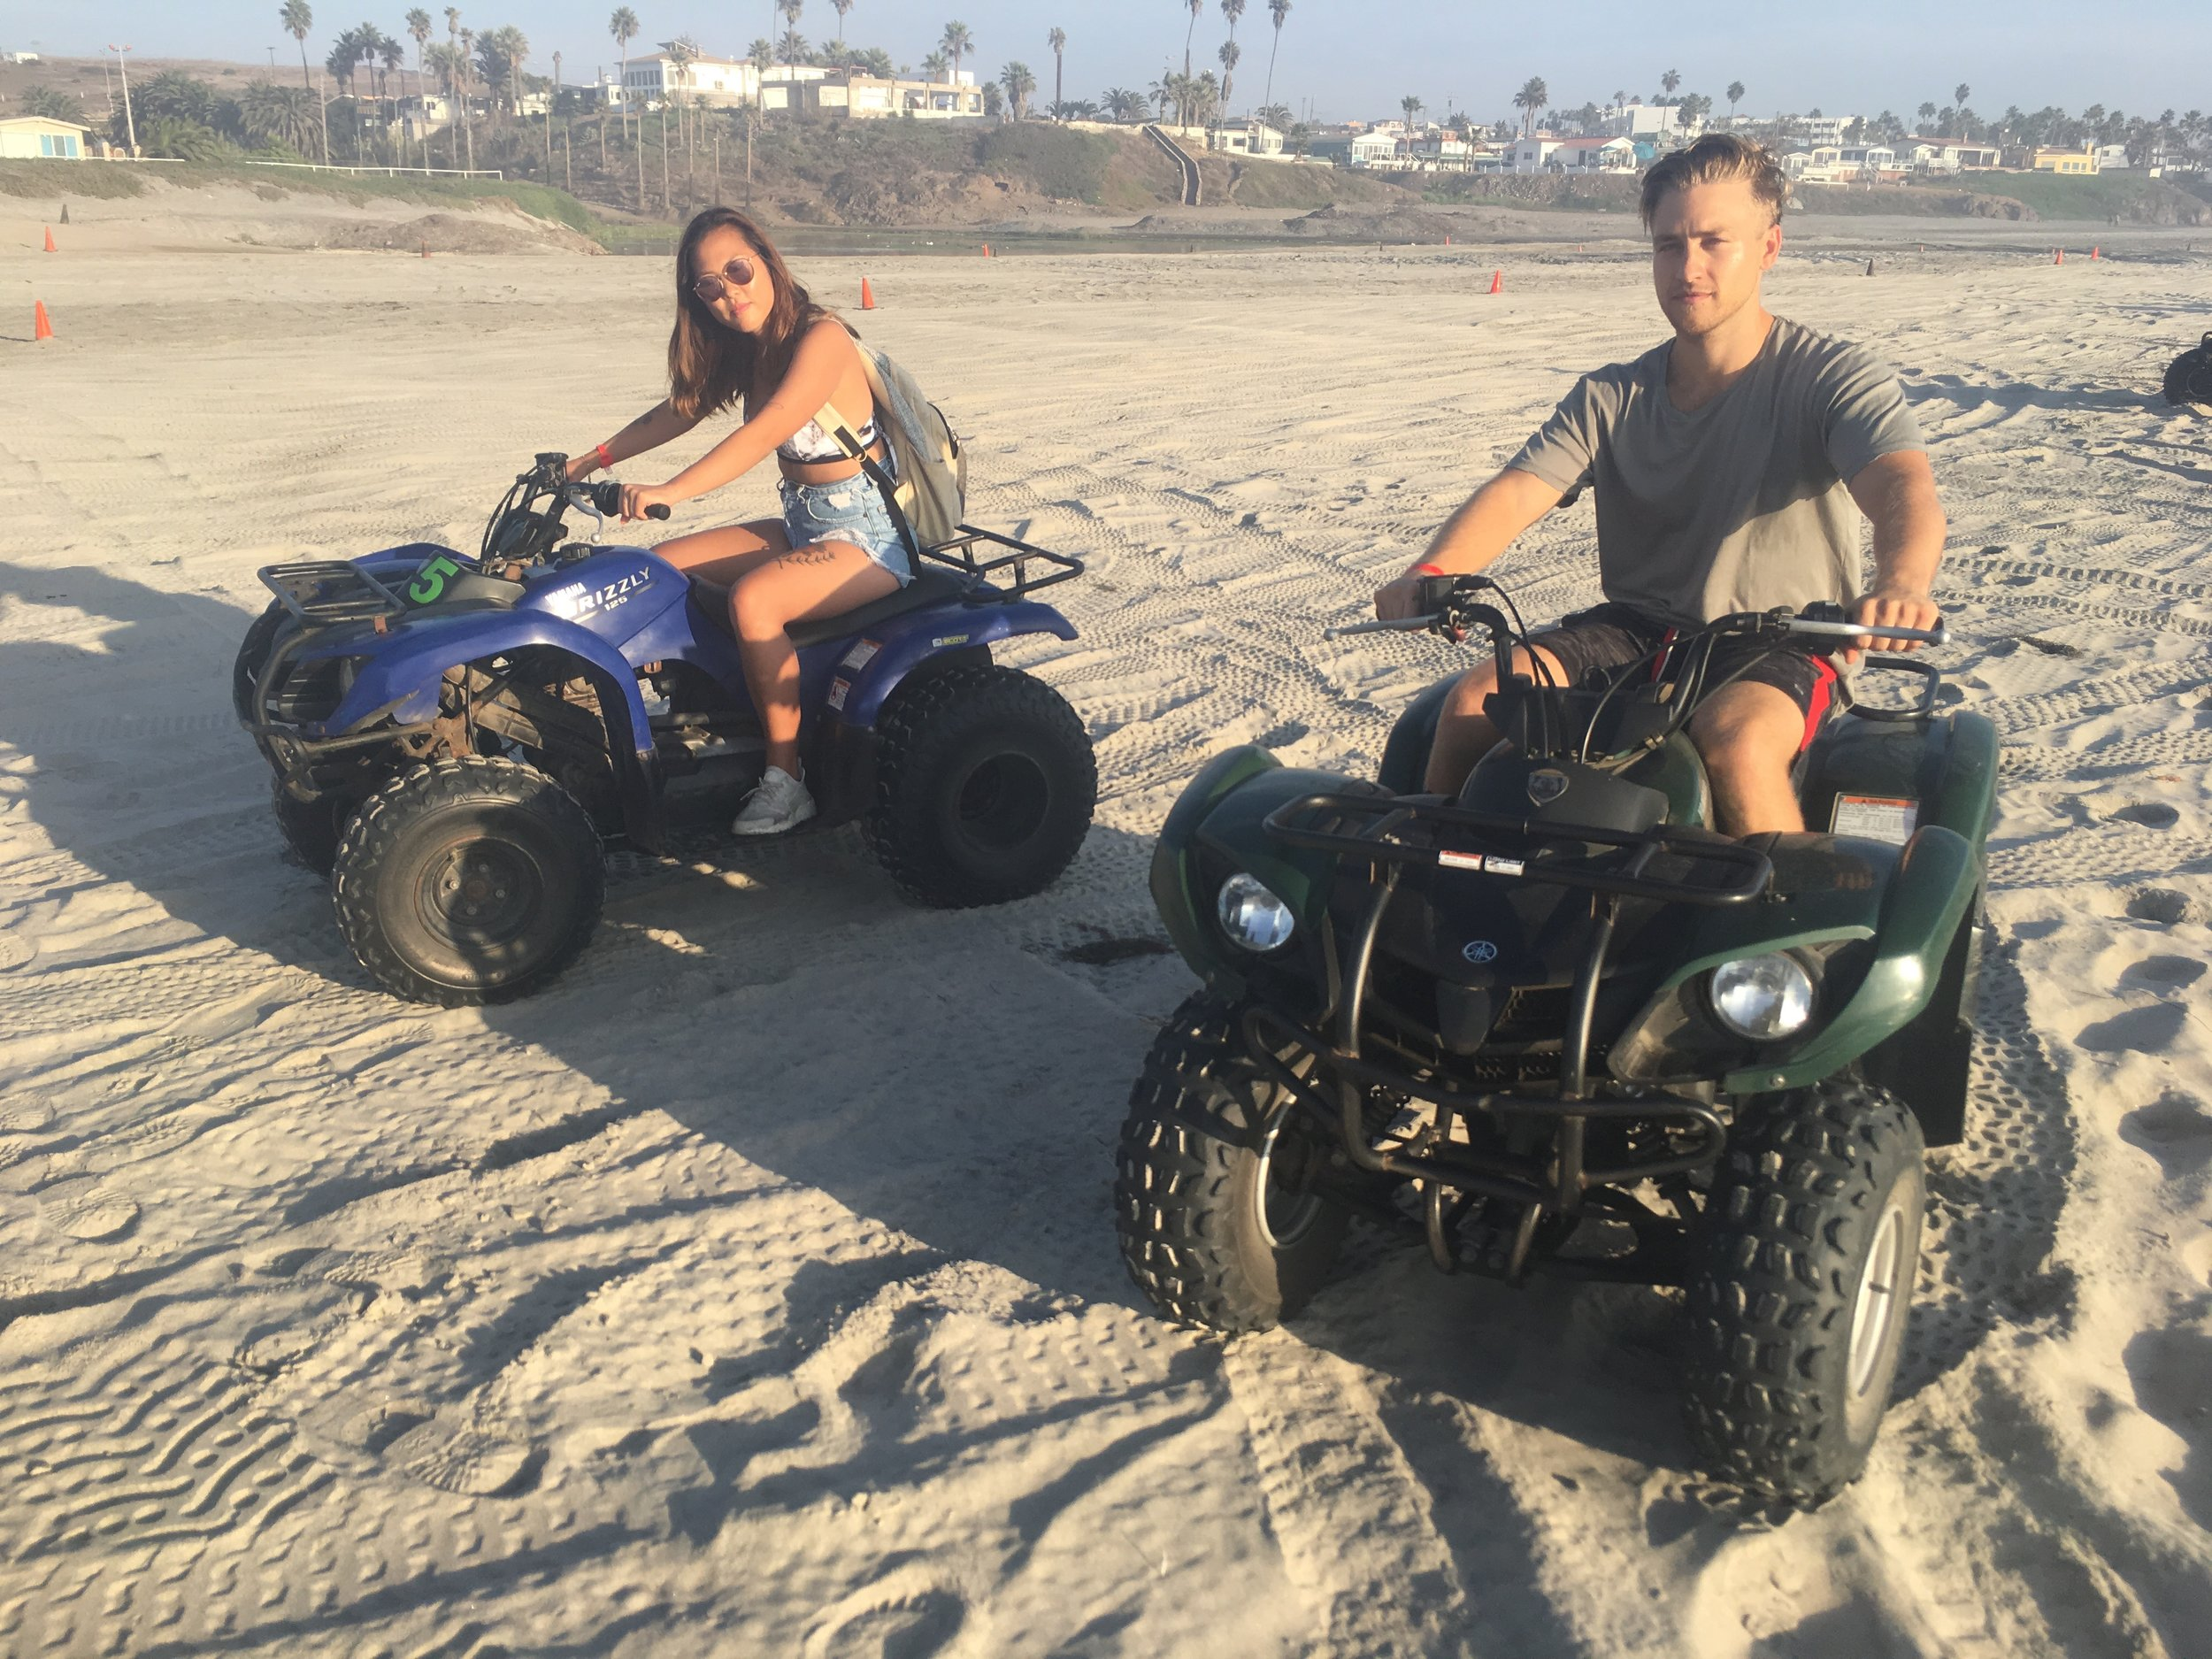 After our late lunch, we went to ride ATV's on the beach. I've never rode an ATV before! It was $20 for half an hour.